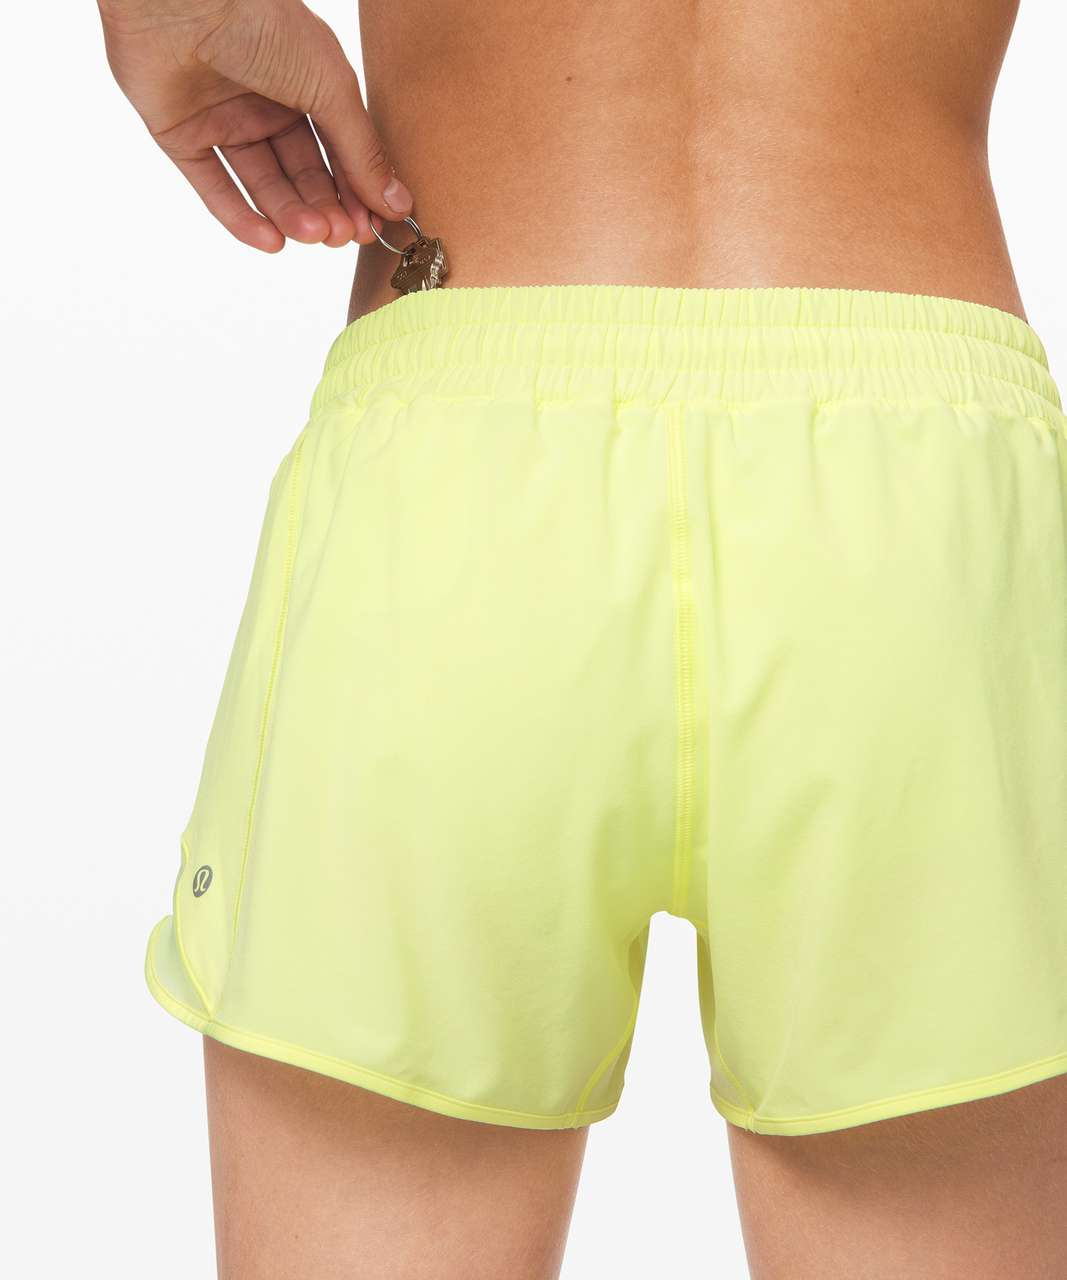 "Lululemon Hotty Hot Short II *Long 4"" - Florid Flash"